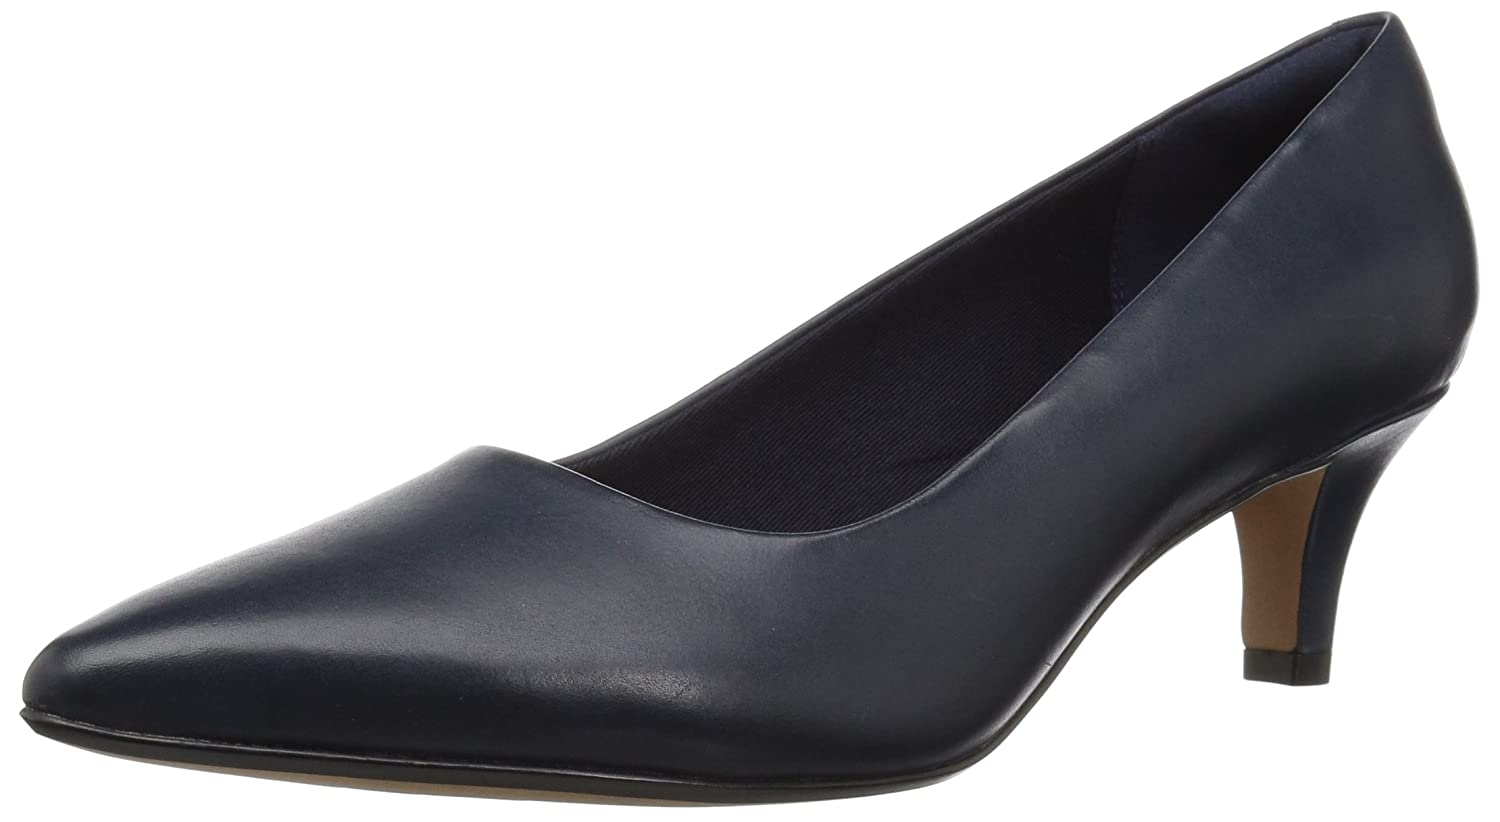 CLARKS Women's Linvale Jerica Pump B078GB8QYX 080 W US|Navy Leather